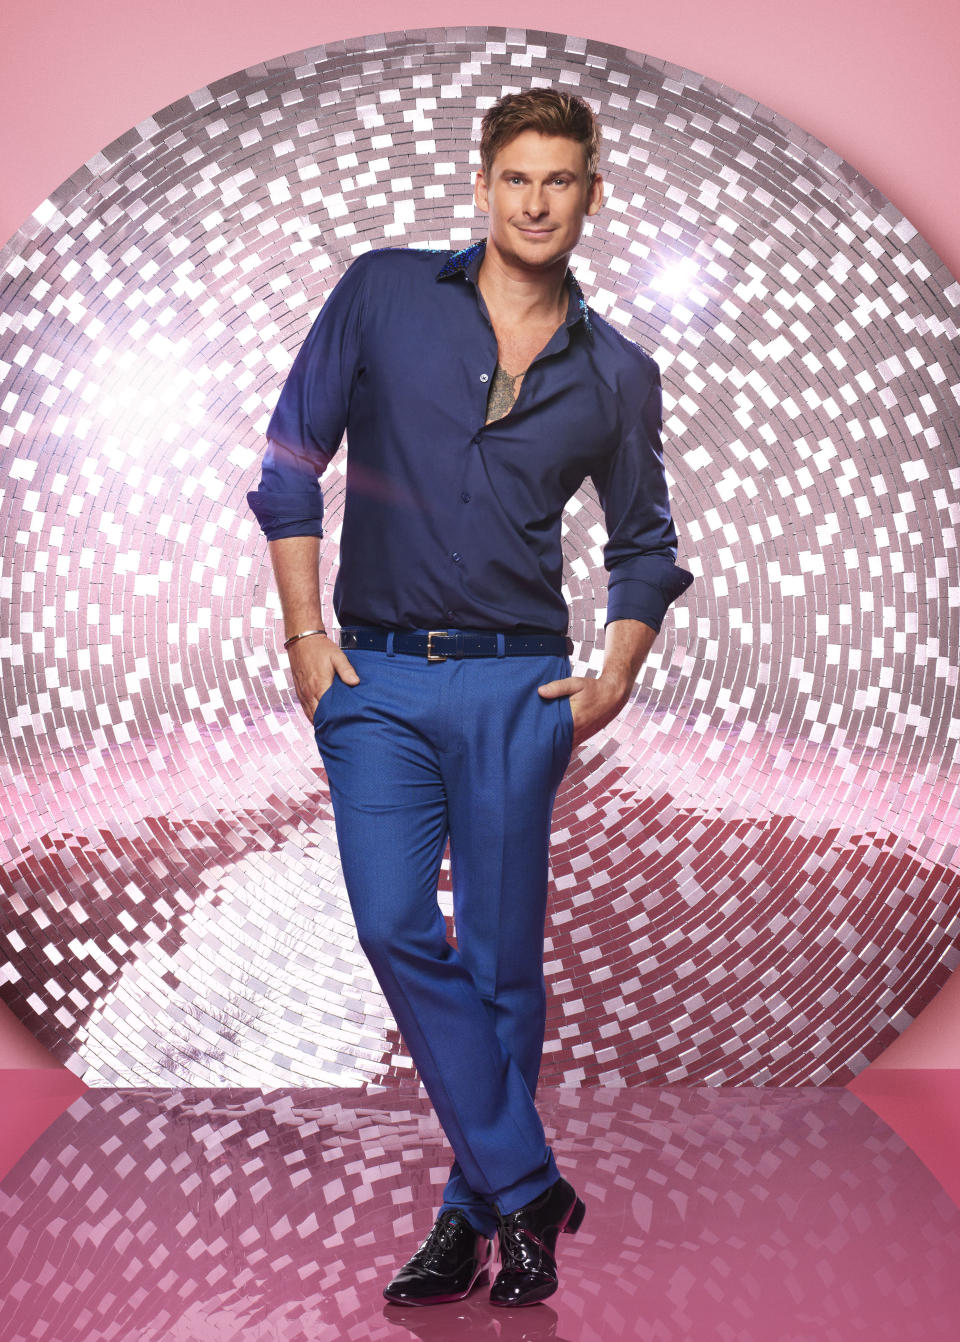 """<p>Blue bandmember and former EastEnders actor Lee Ryan said he's honoured to join this year's line-up: """"It is nice to say now that I was on one of the biggest soaps that has ever existed in this country and now I'm on one of the biggest shows in this country so I feel very privileged,"""" Ryan told us. (BBC Pictures). </p>"""